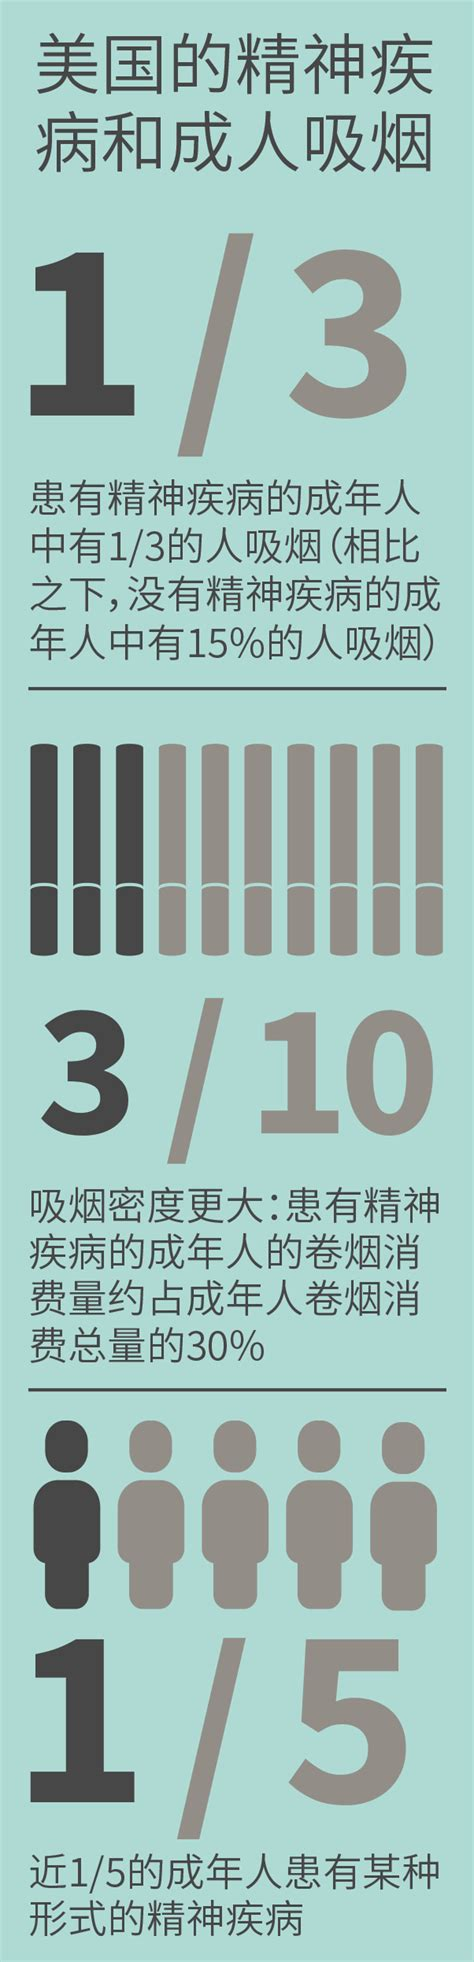 They can occur at the same time or one after the other. TAT001-comorbidities-mental-illness-CHINESE   Tobacco Atlas